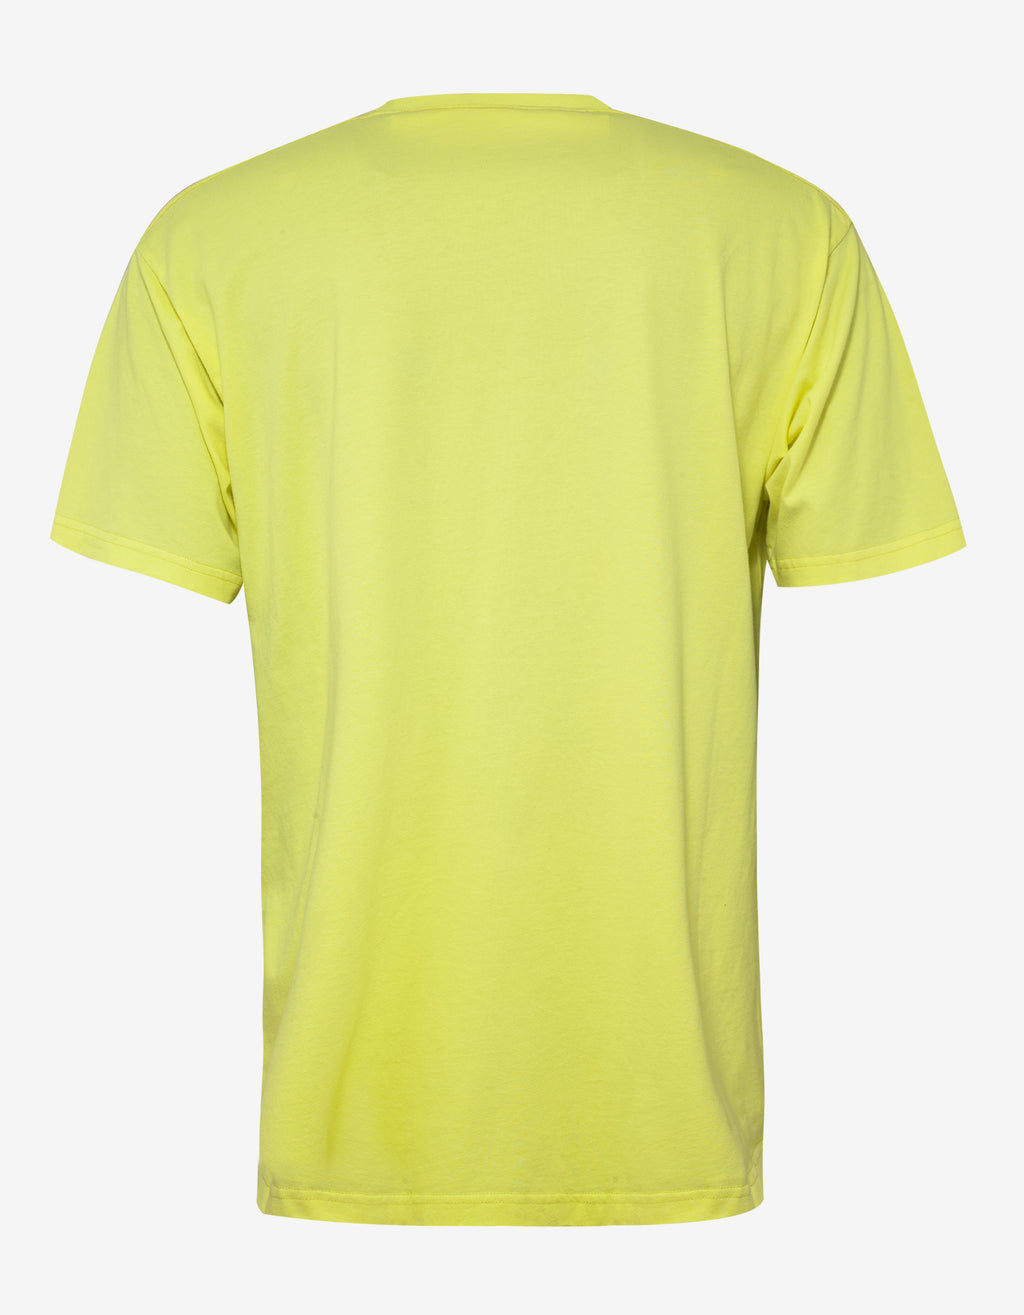 Yellow Power of Dreams Print T-Shirt